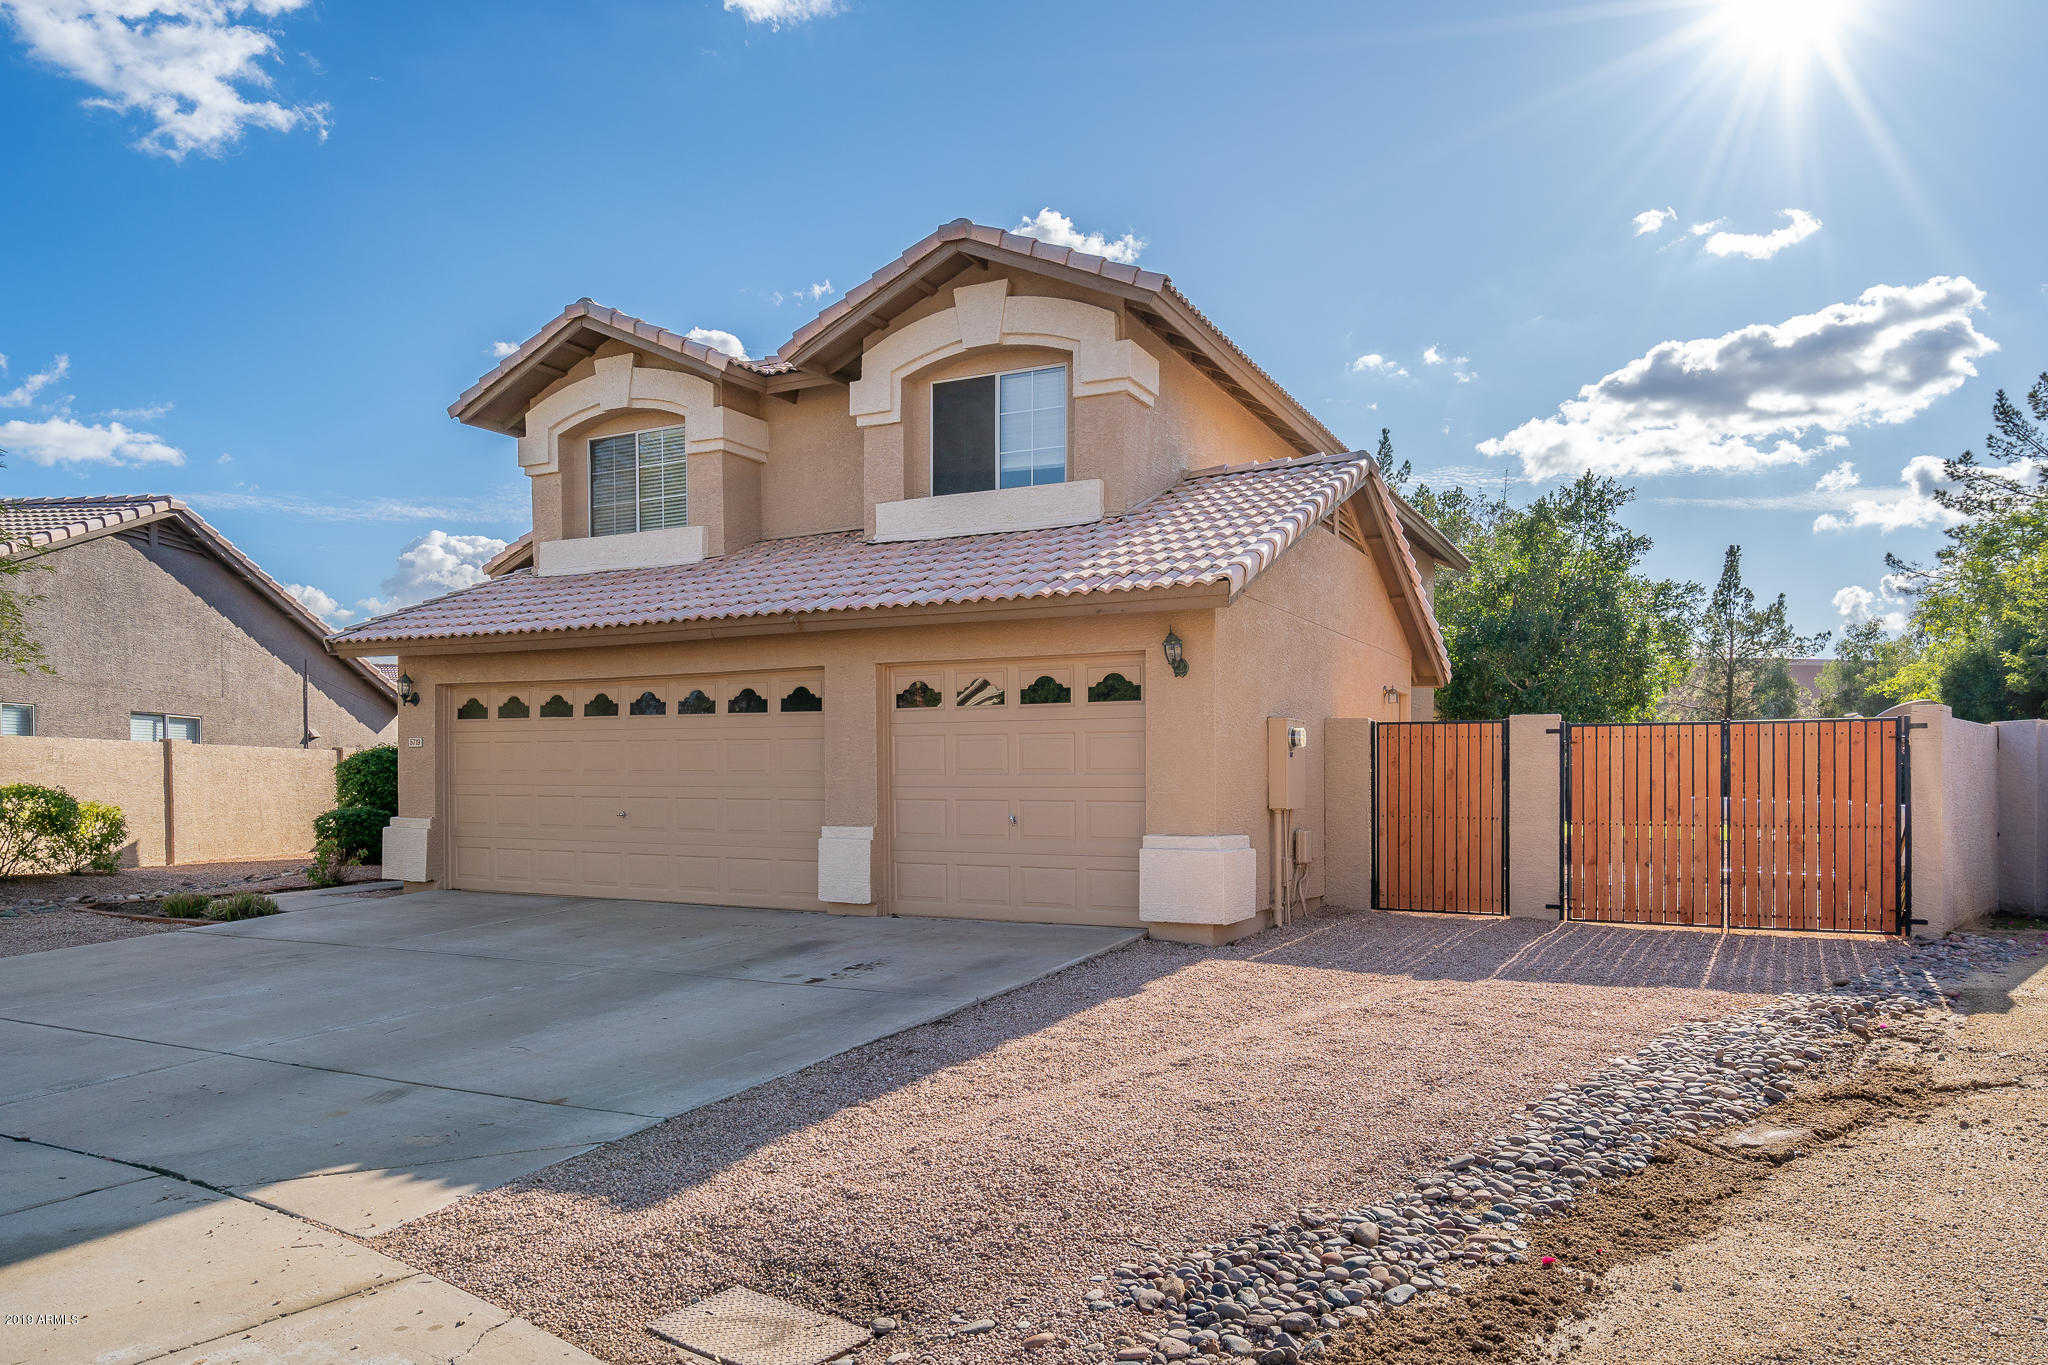 $449,000 - 5Br/3Ba - Home for Sale in Fulton Homes At Arrowhead Ranch Unit 2, Glendale